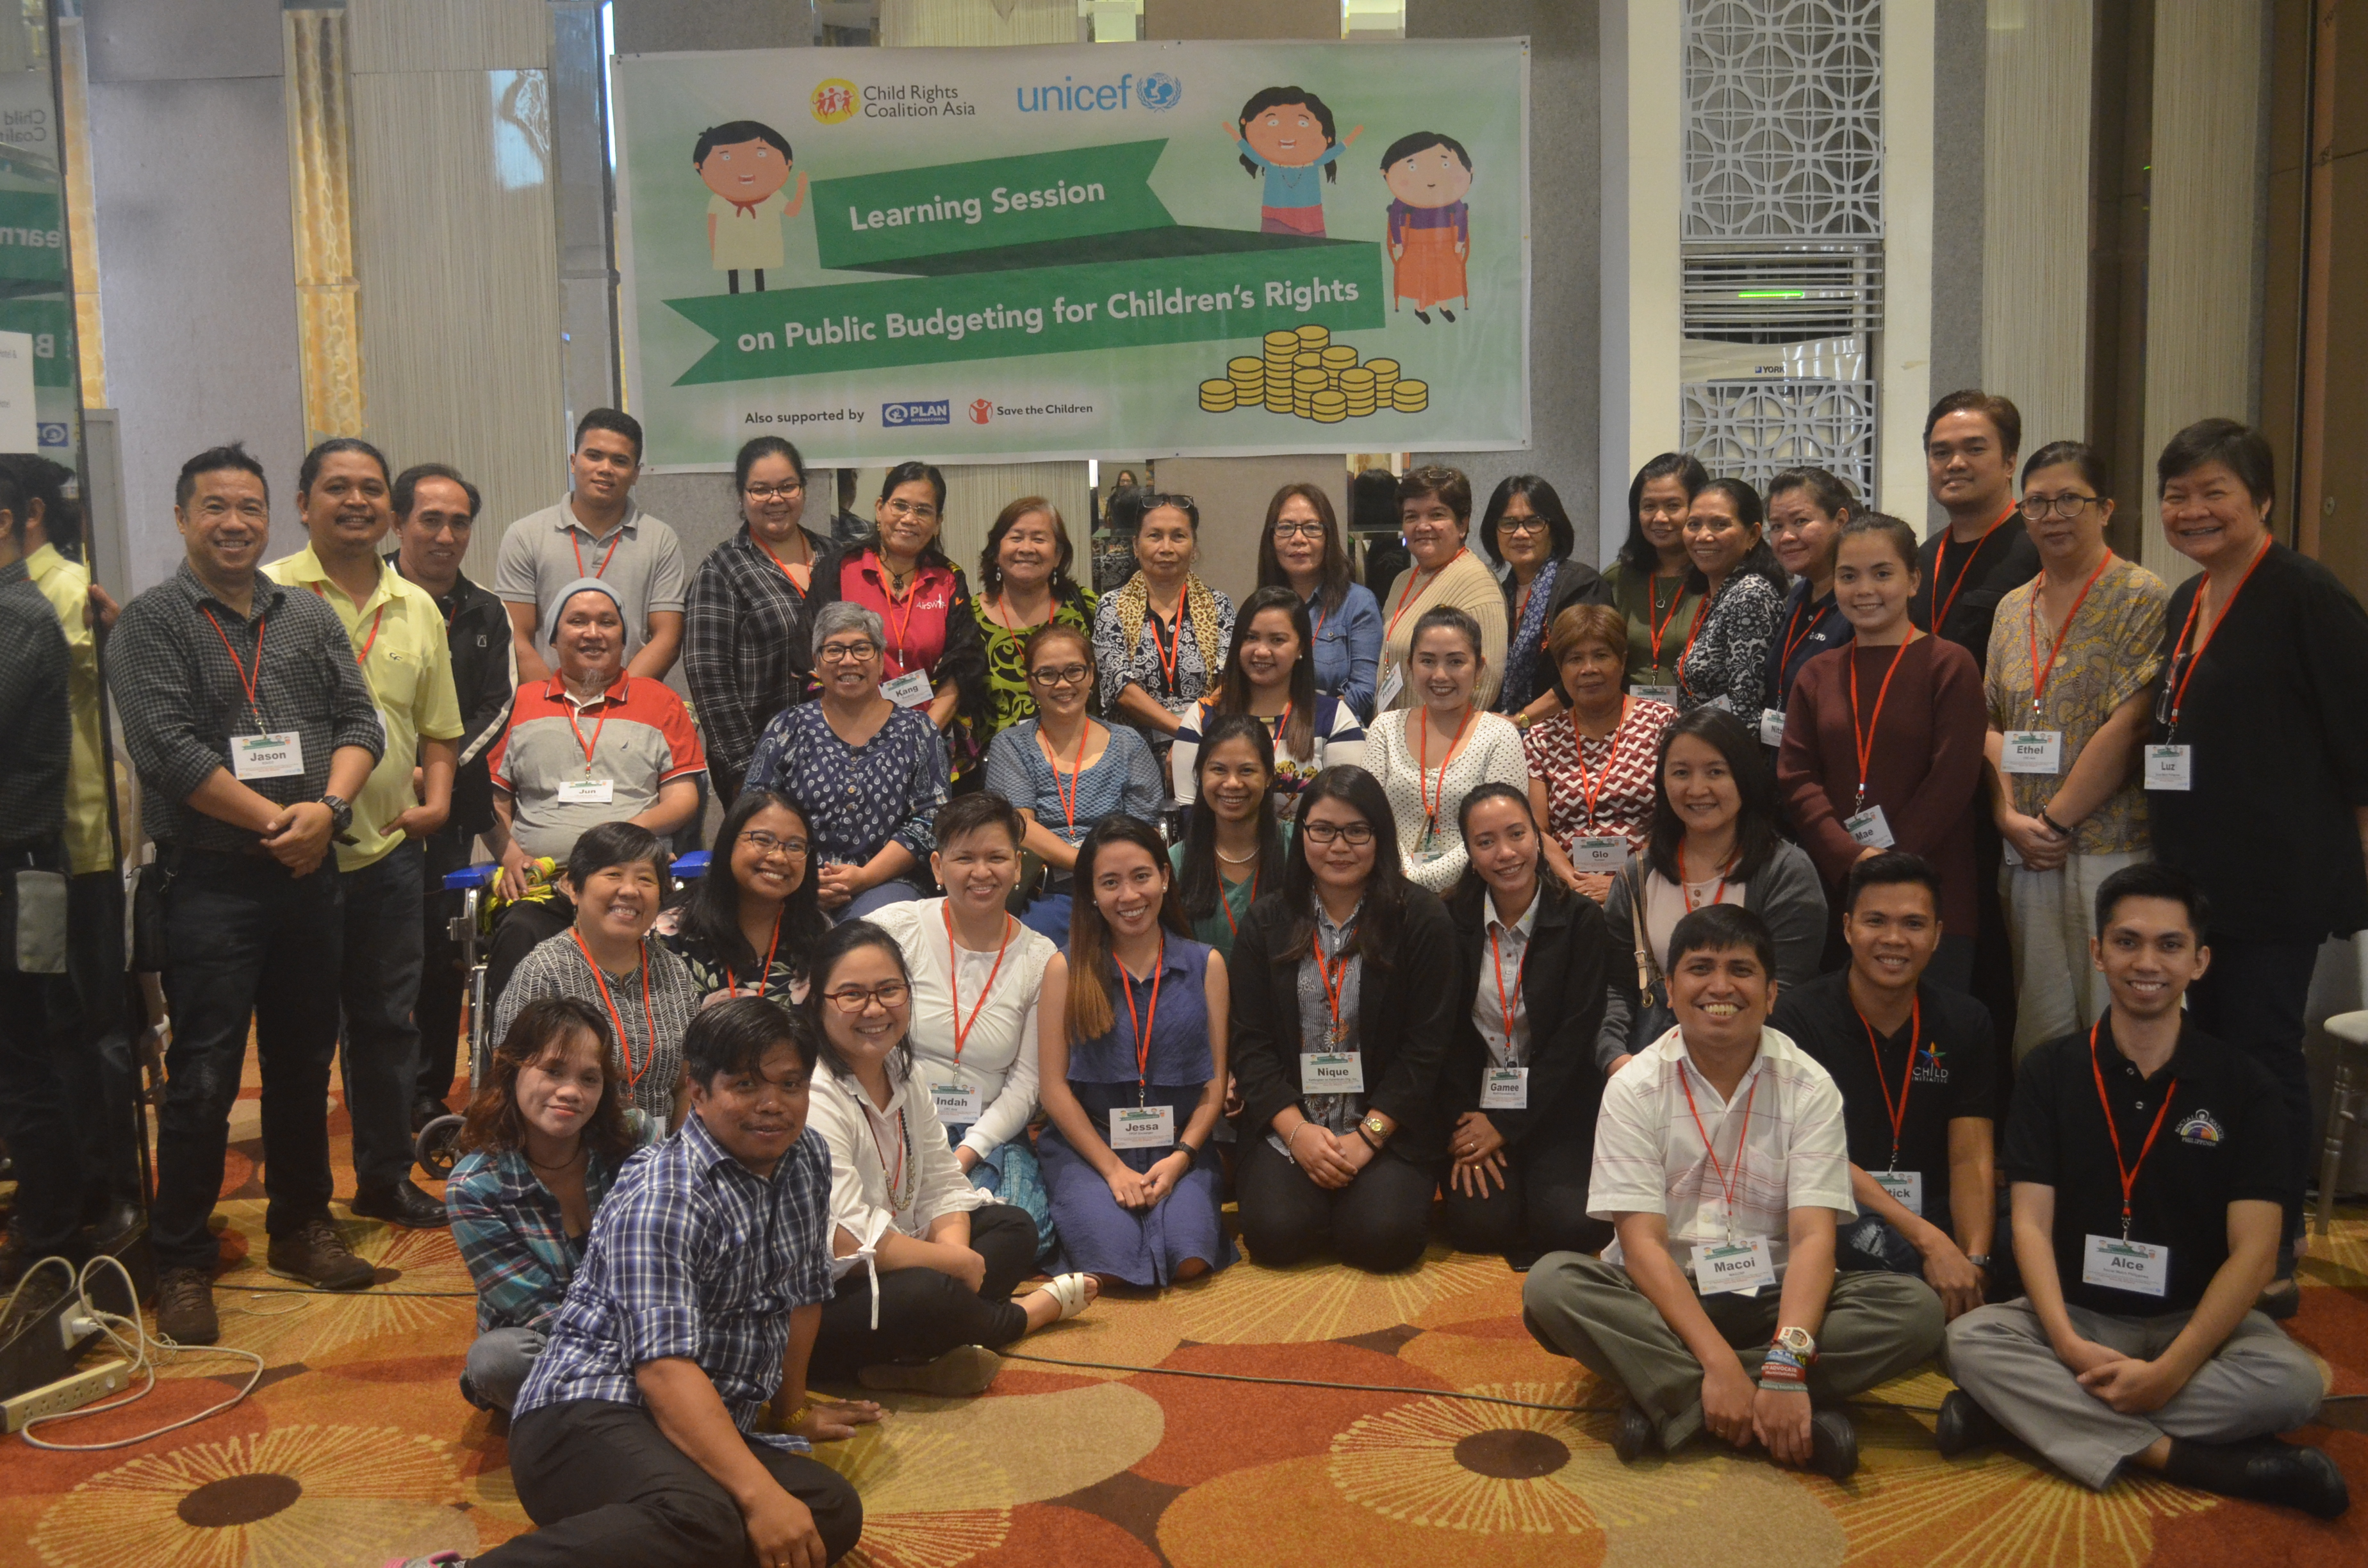 Third Learning Session on Public Budgeting for Children's